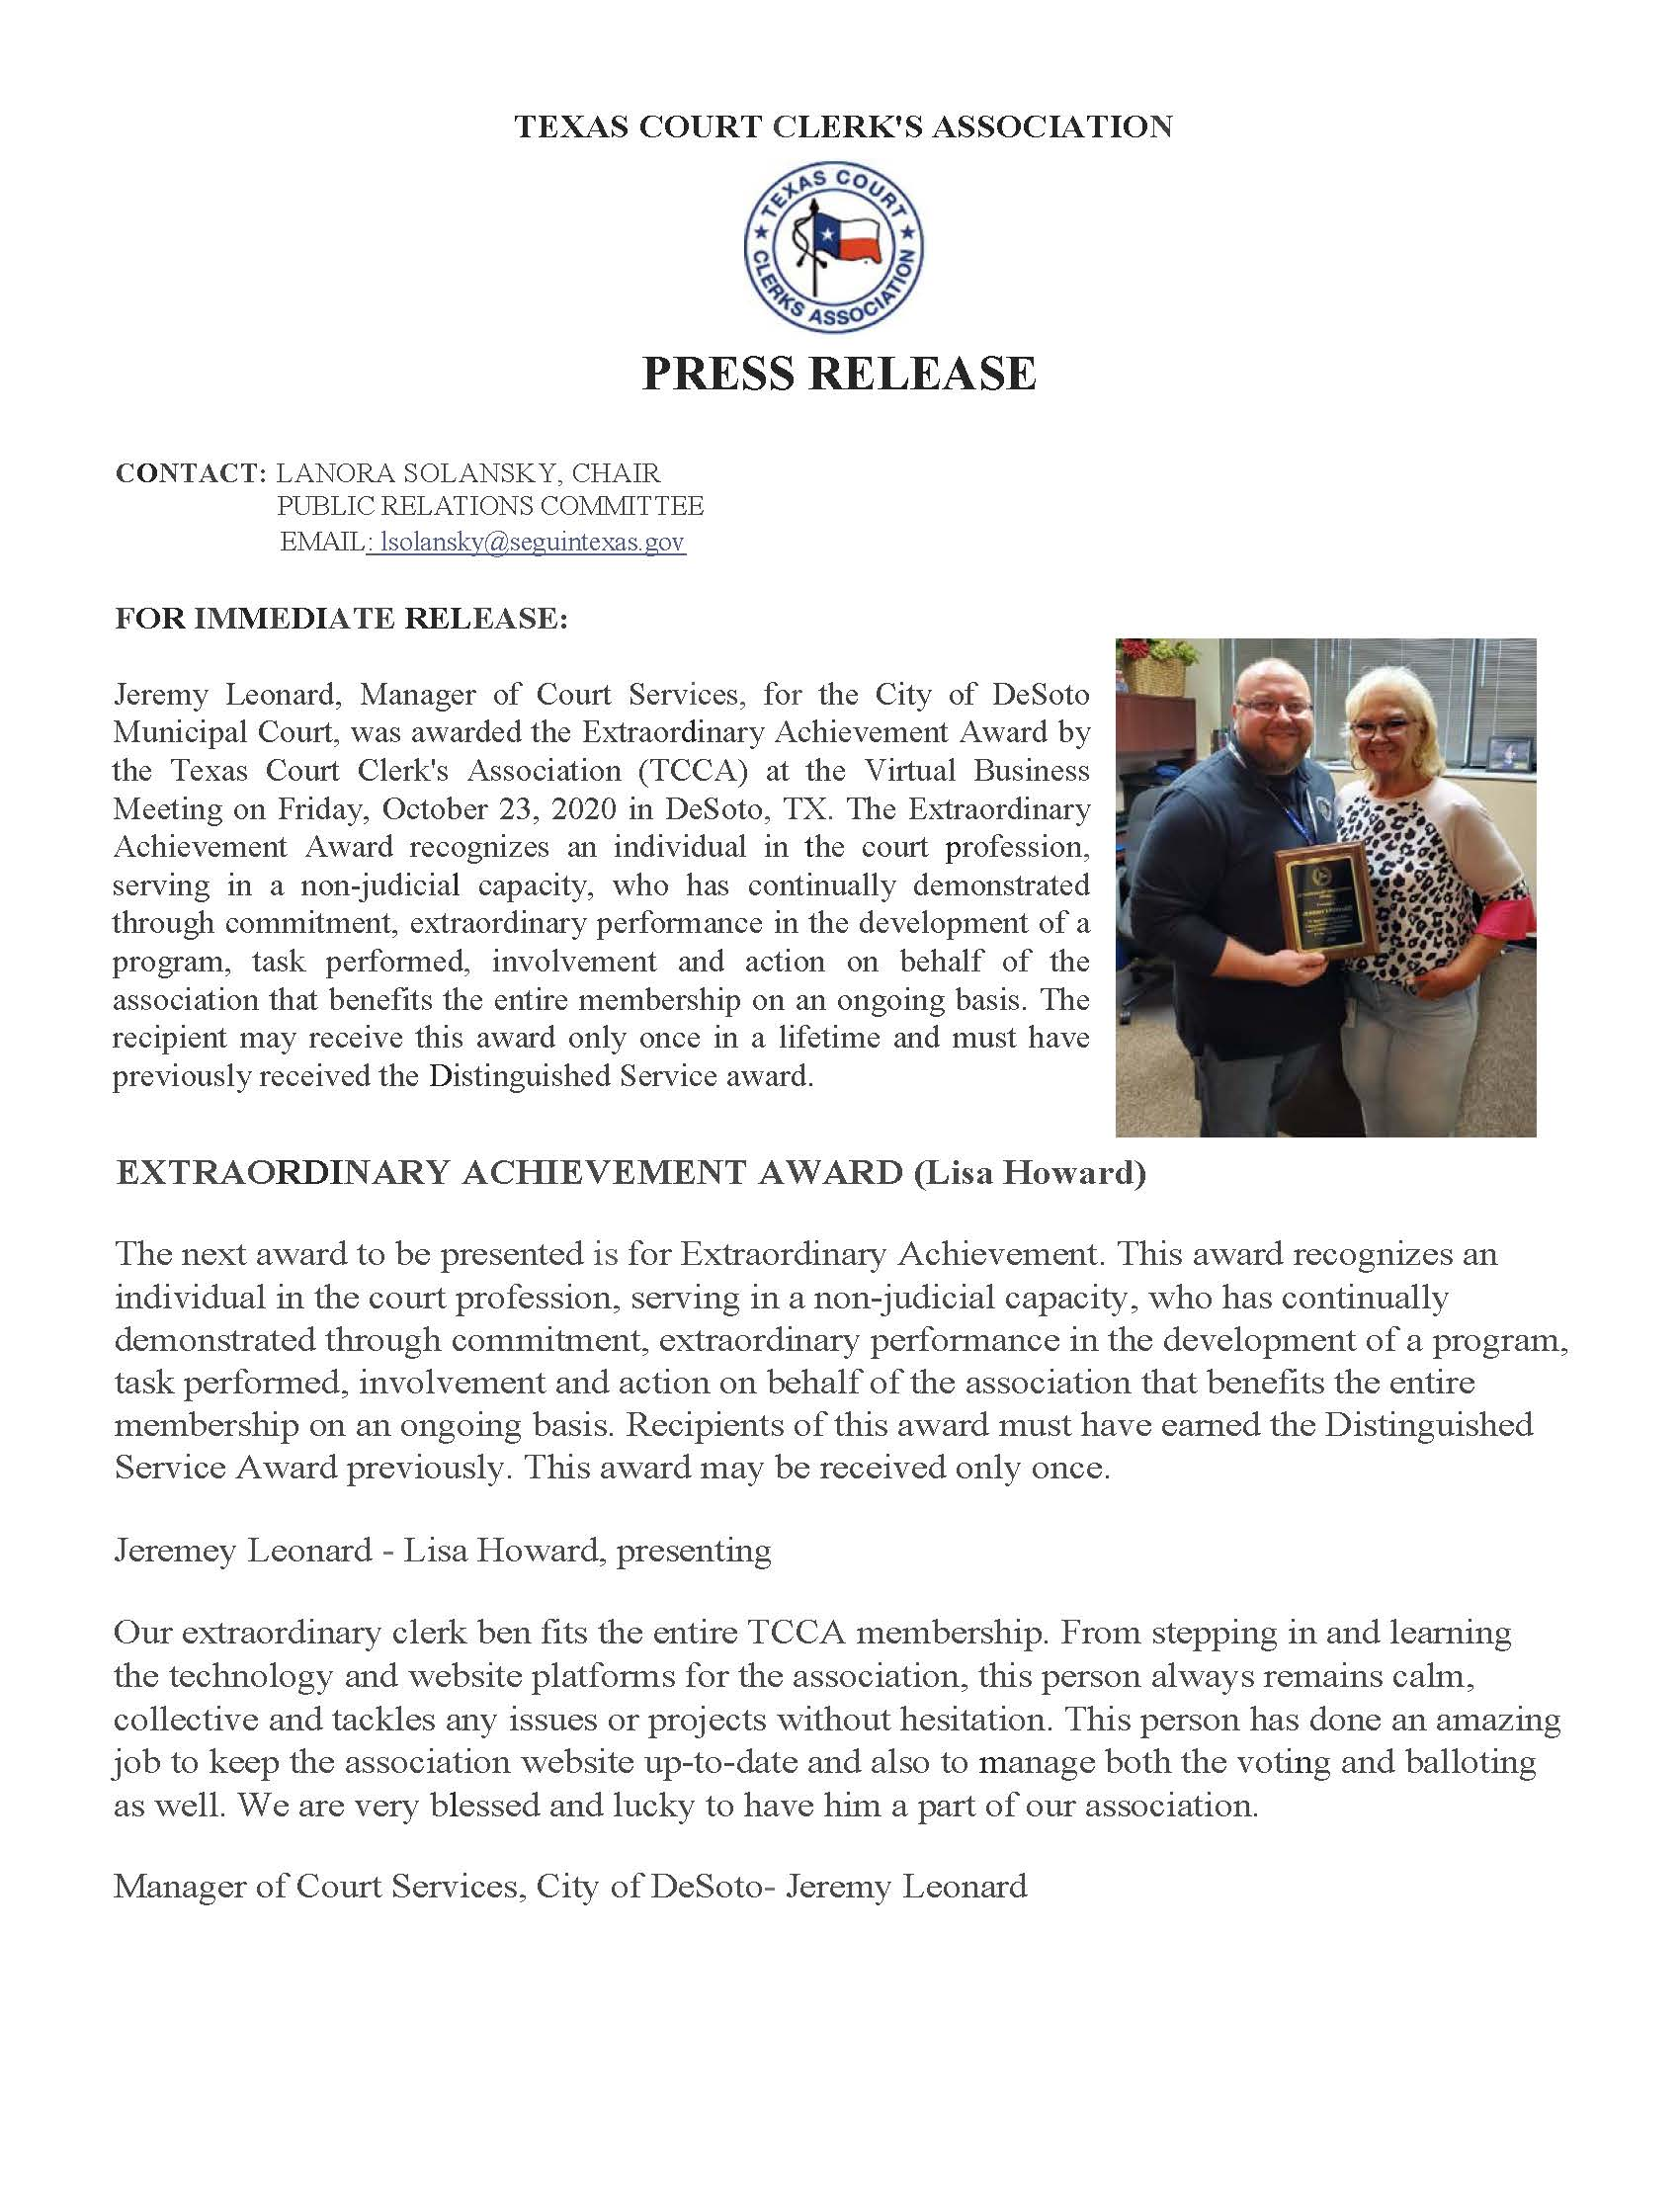 Press Release and photo  - Jeremy Leonard